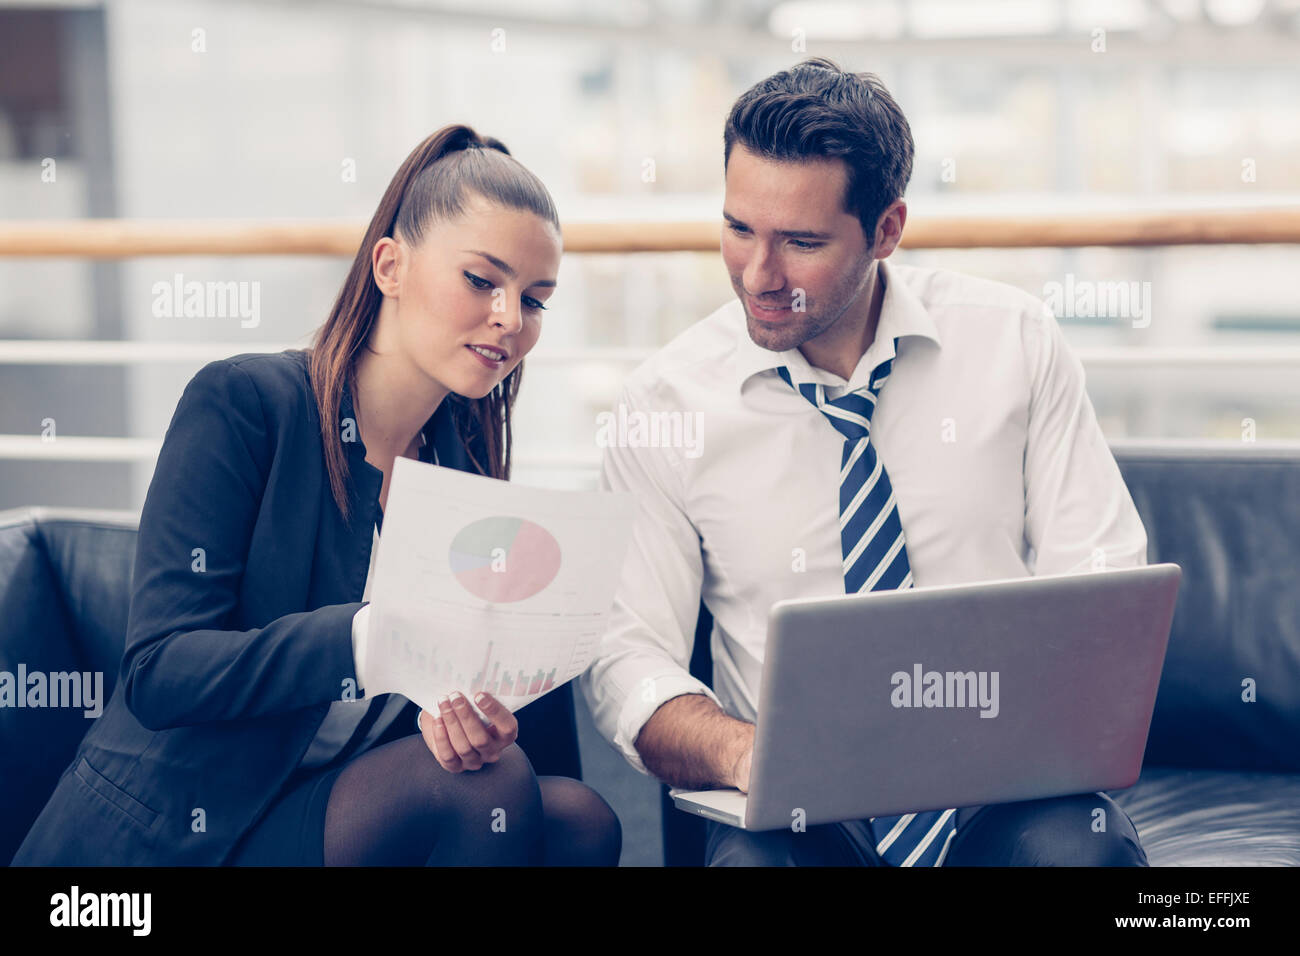 Business people meeting at the office - Stock Image